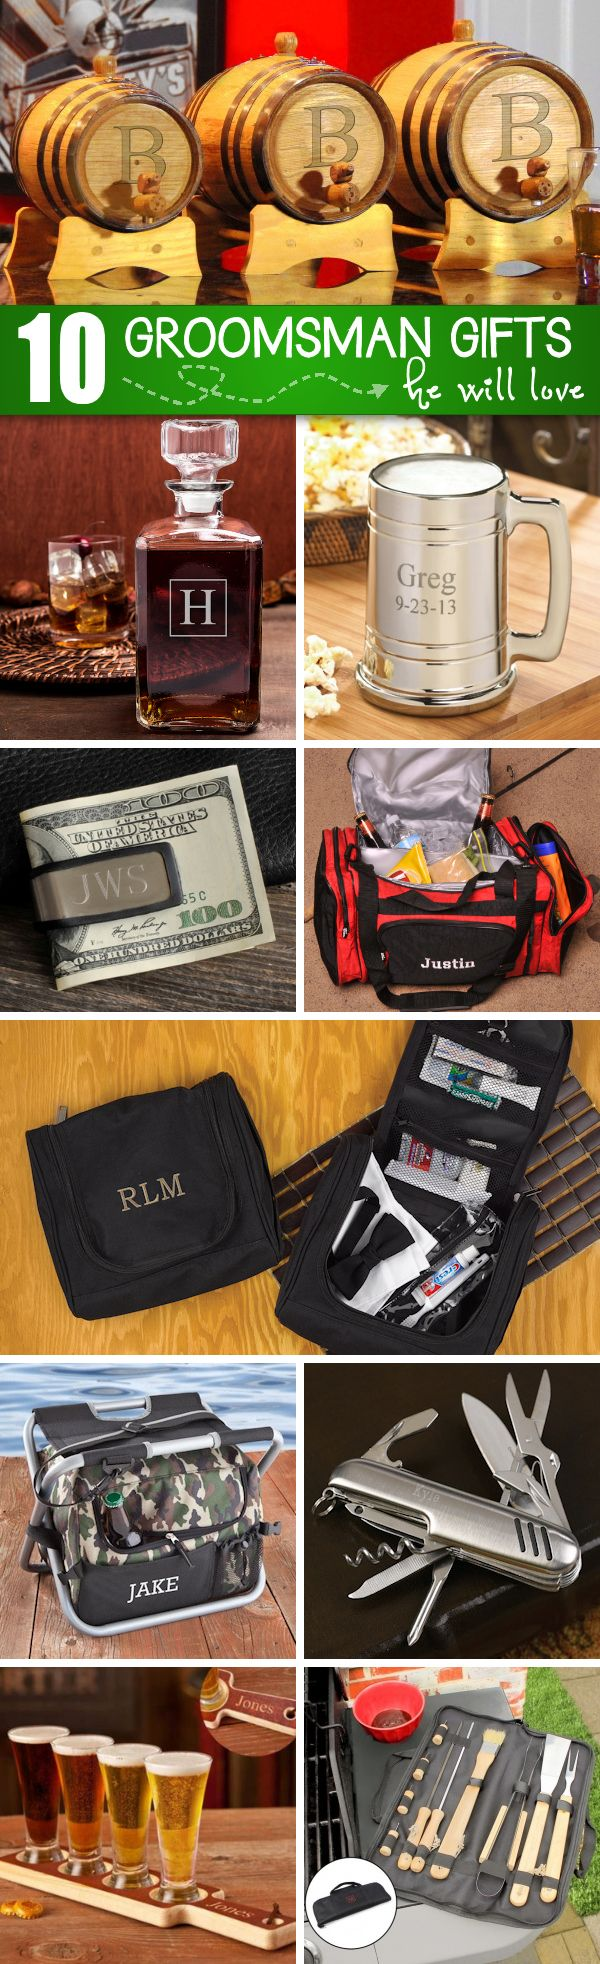 10 Groomsmen Gifts that He'll Love!